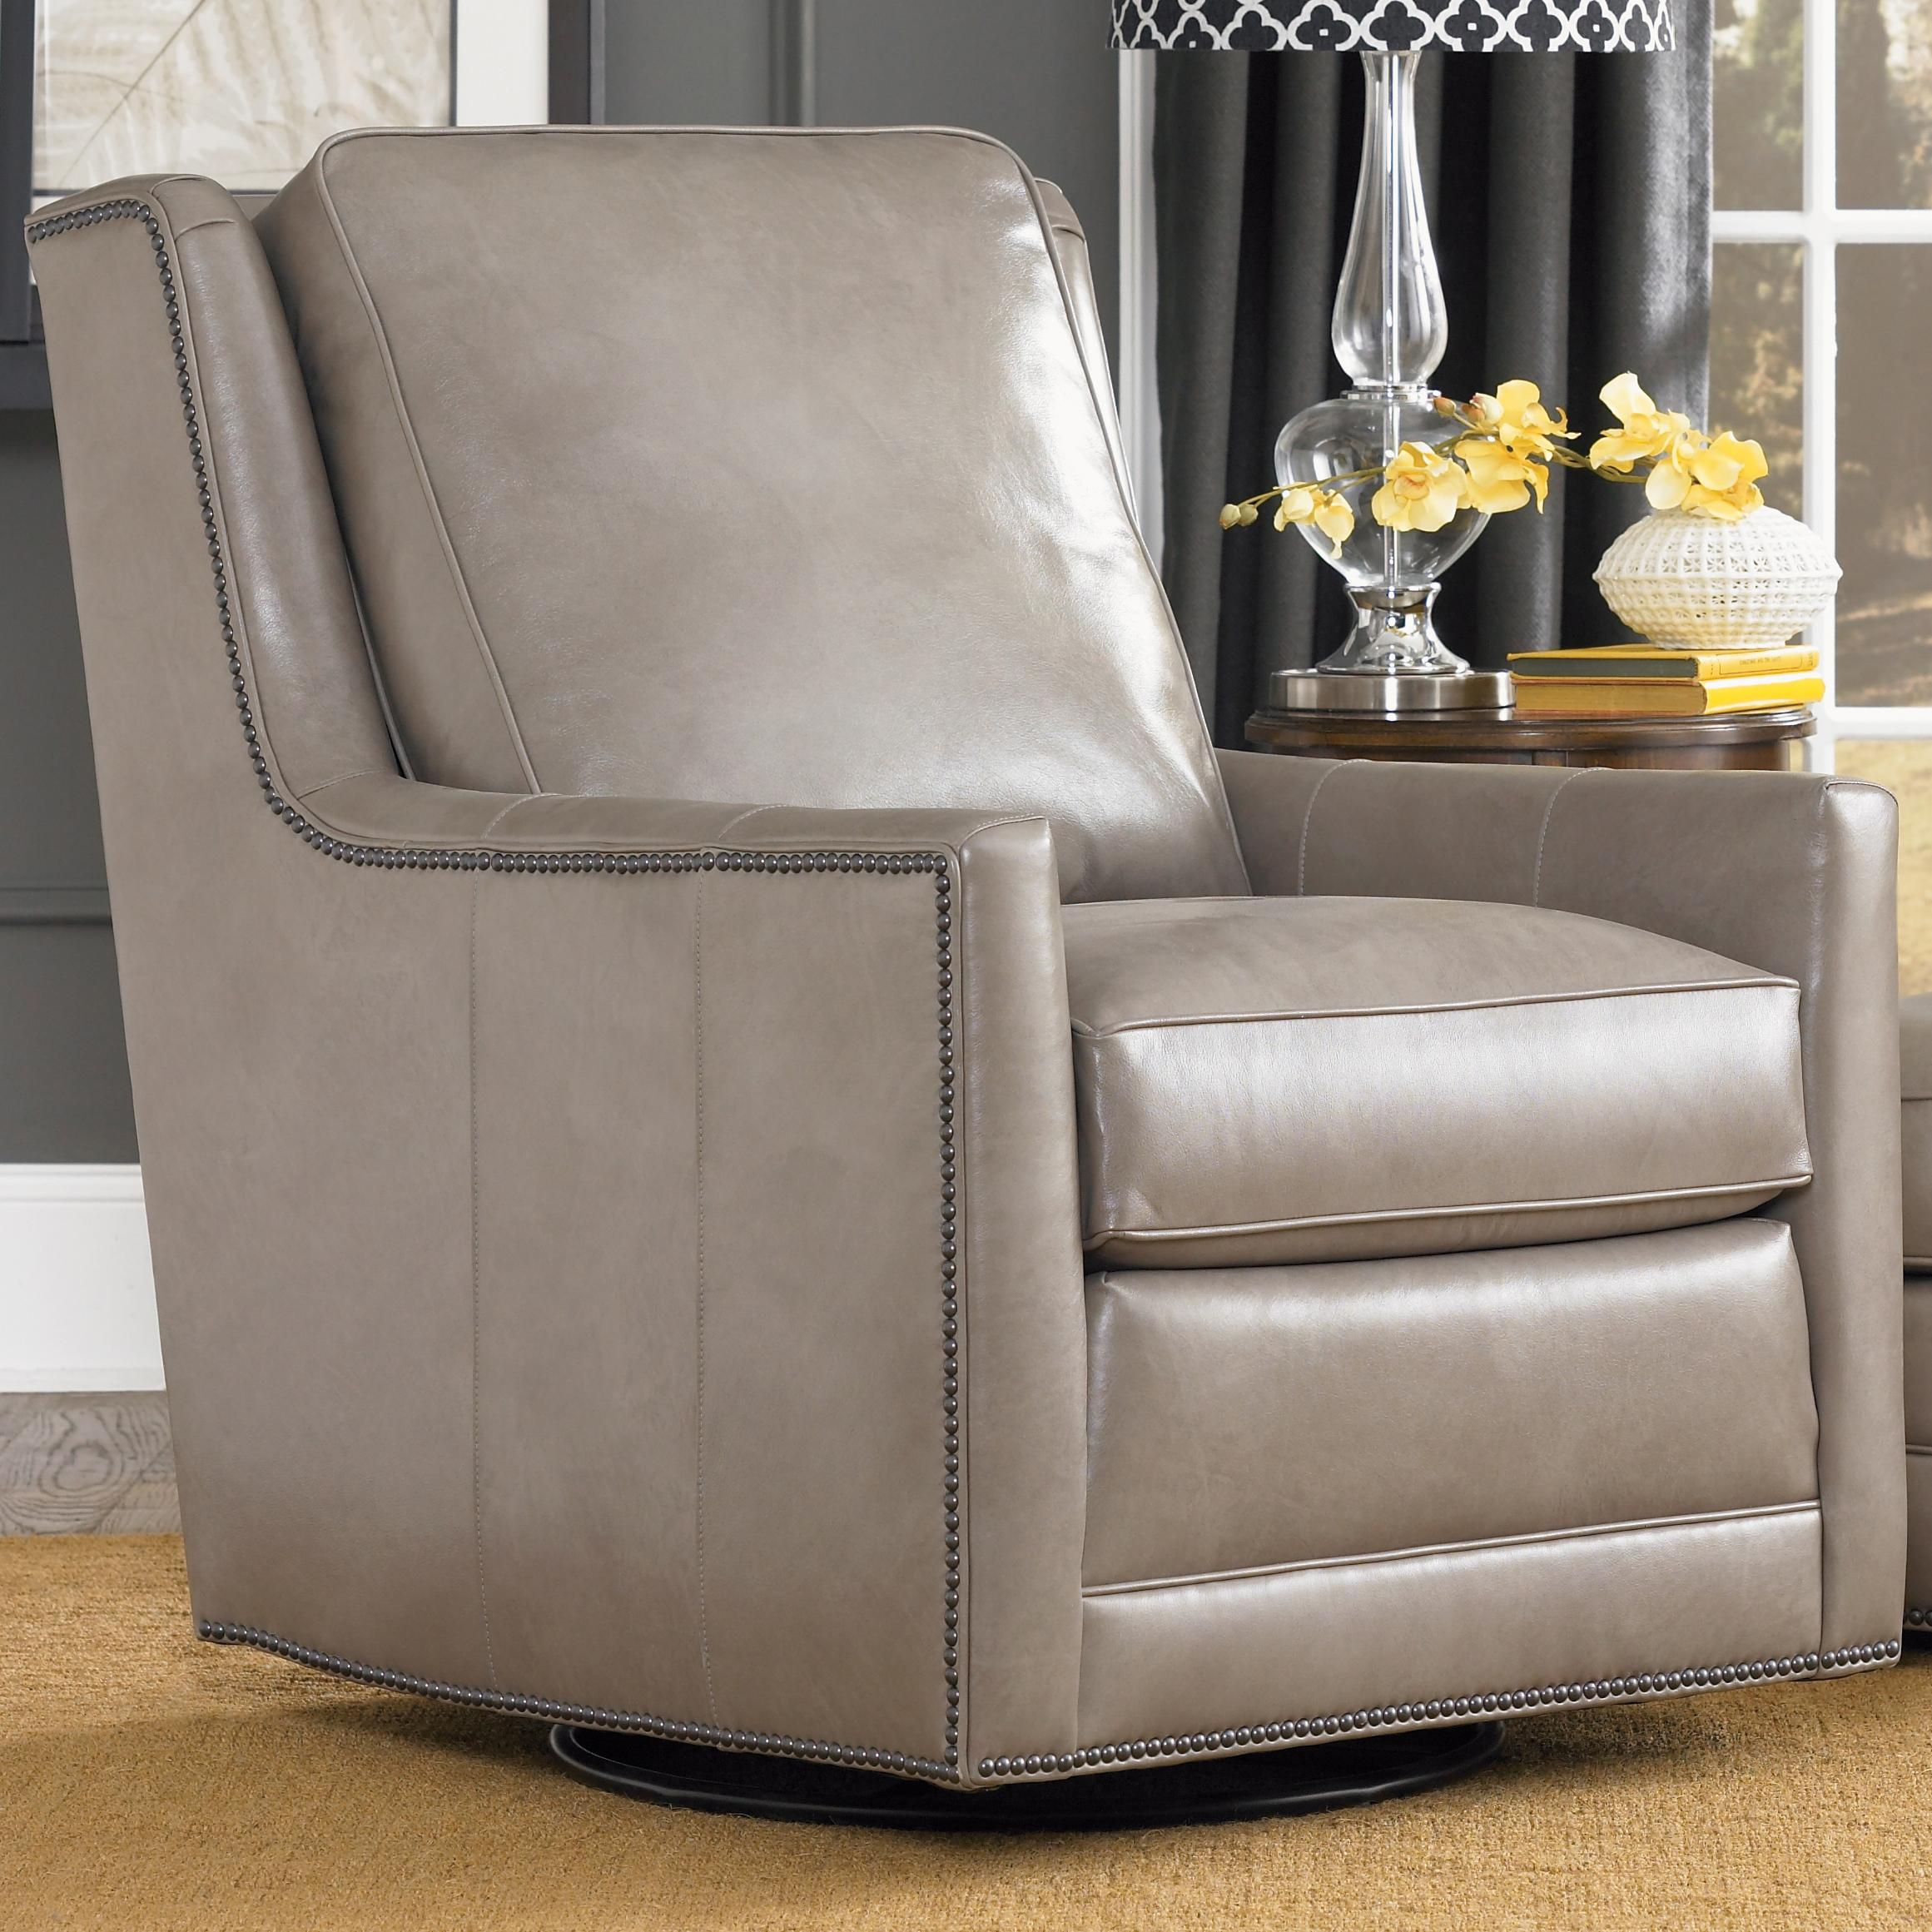 Accent Chairs and Ottomans SB Swivel Chair by Smith Brothers at Rooms and Rest